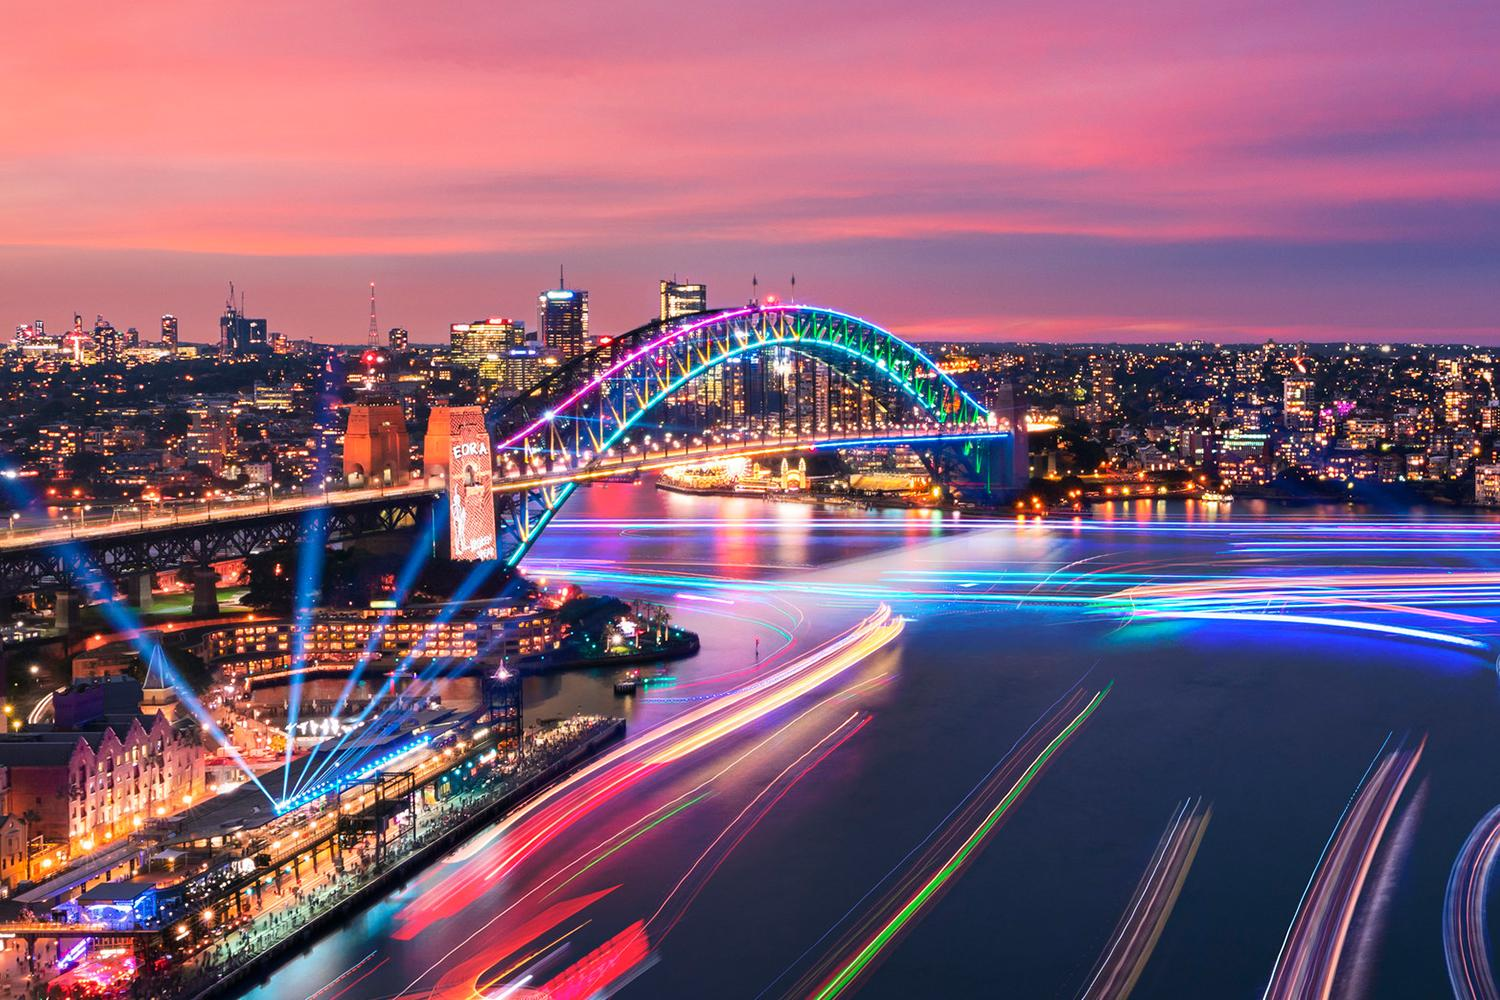 Views of Harbour Lights installations on marine vessels moving across Sydney Harbour during Vivid Sydney 2019